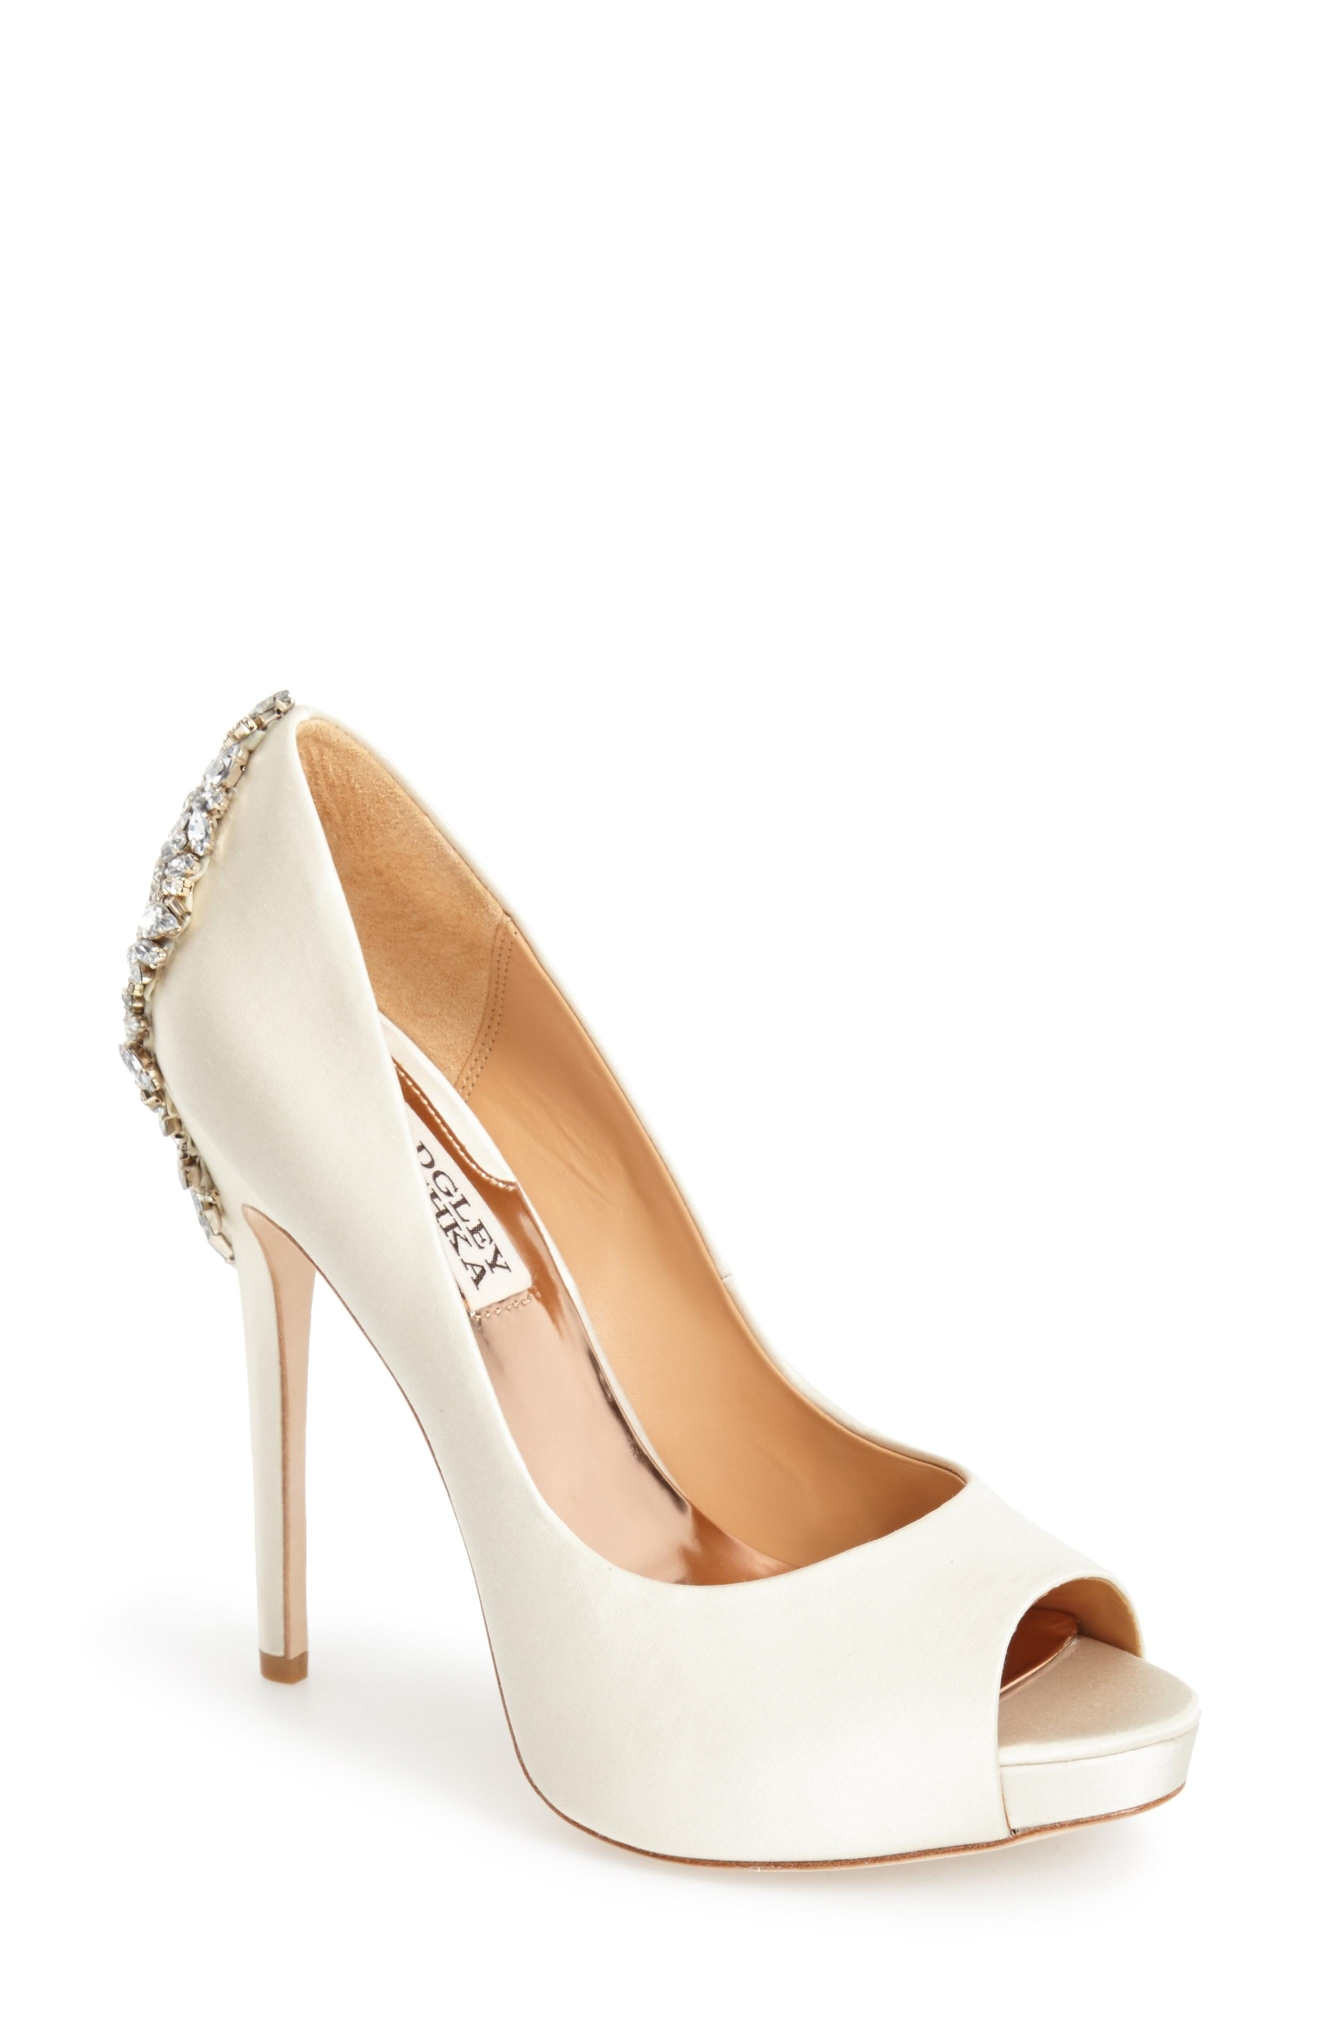 Badgley Mischka 'Kiara' Crystal Back Open Toe Pump, $245,  Nordstrom.com (Image: Courtesy Nordstrom)